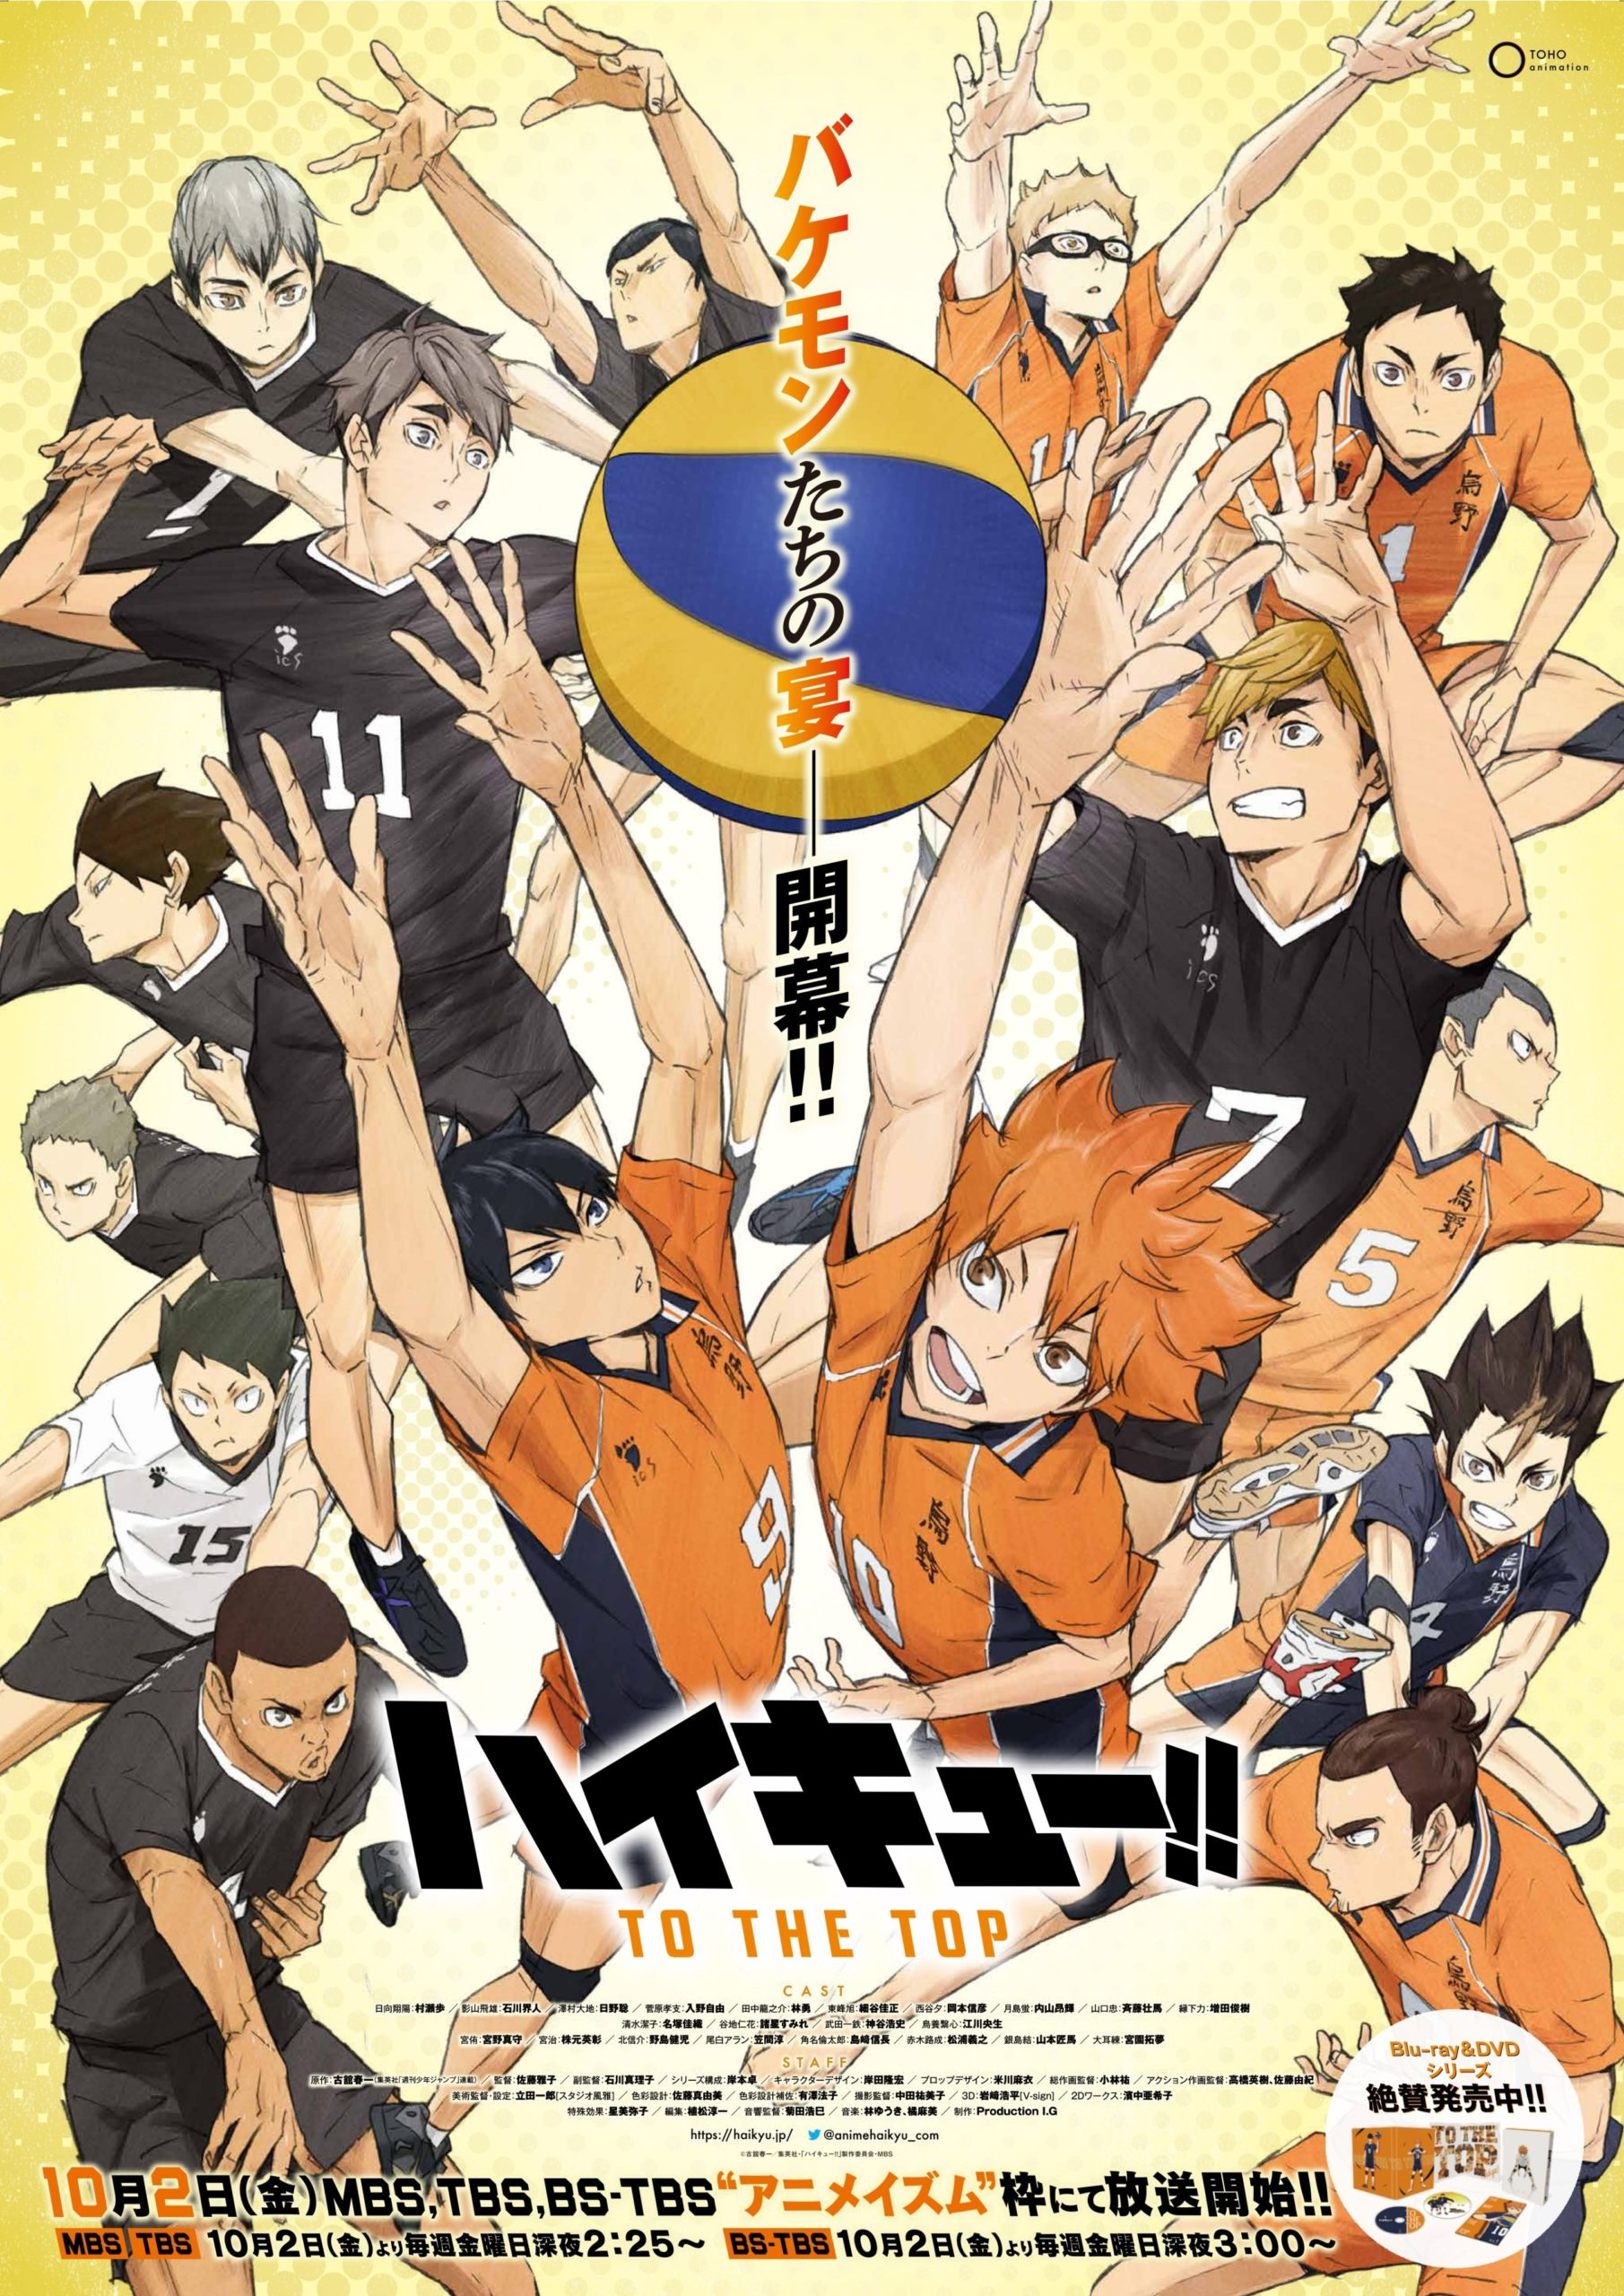 Haikyuu !!: Up